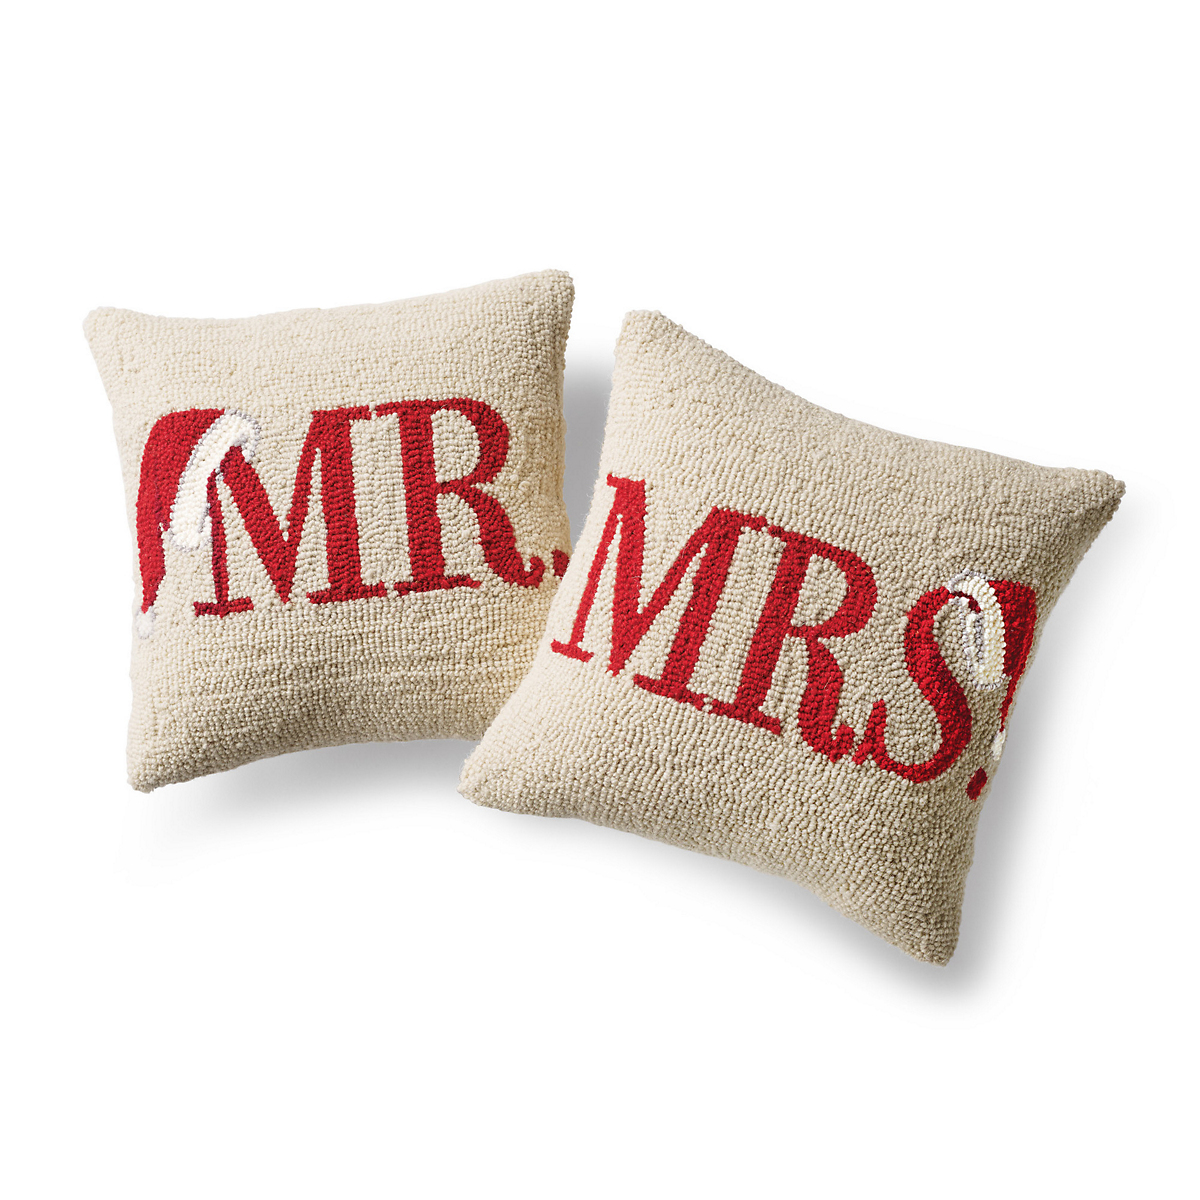 Mr & Mrs Hand-Hooked Pillows